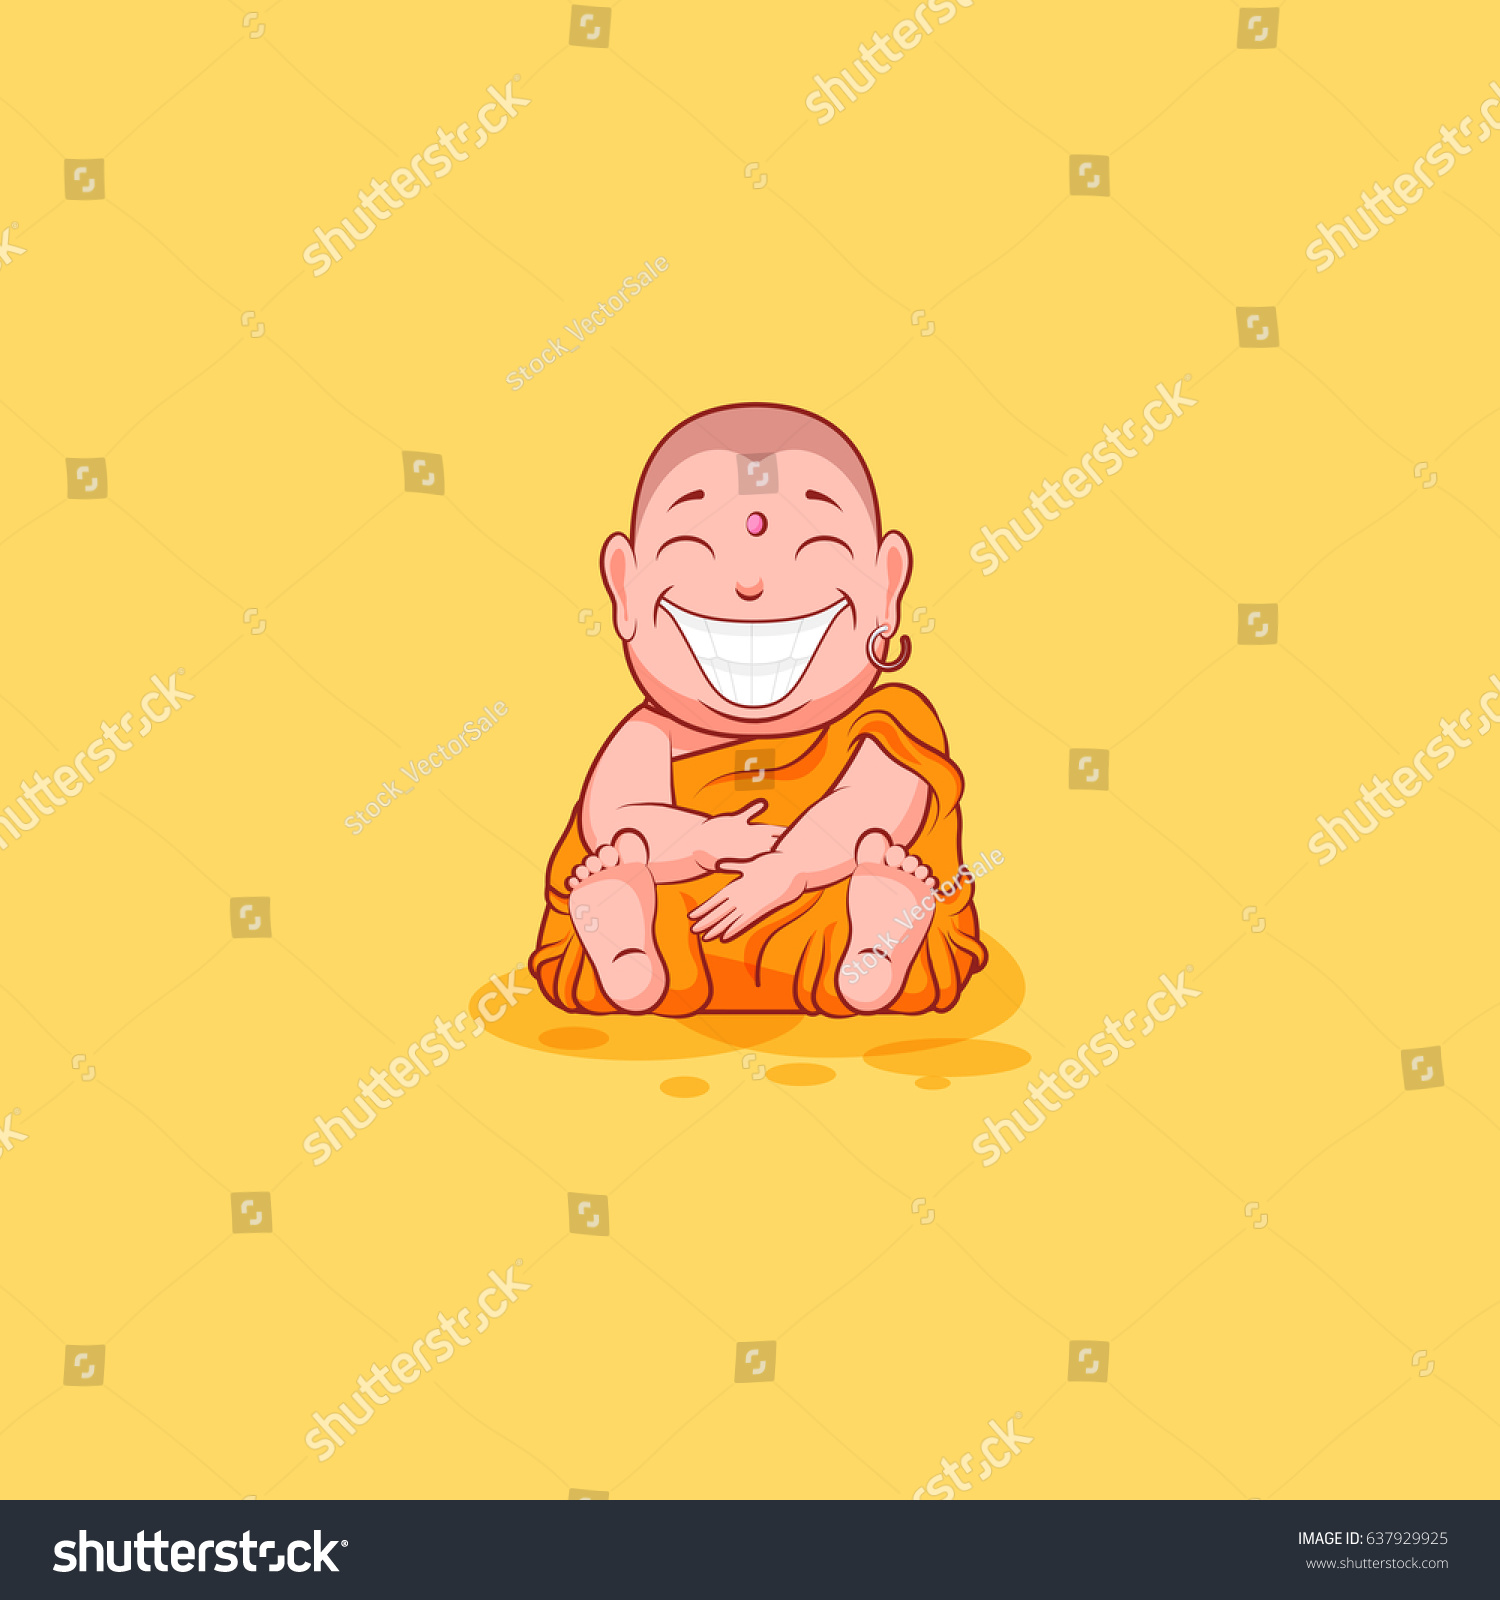 Sticker emoji emoticon emotion vector isolated stock vector sticker emoji emoticon emotion vector isolated illustration happy character sweet cute cartoon buddha huge smile from biocorpaavc Image collections